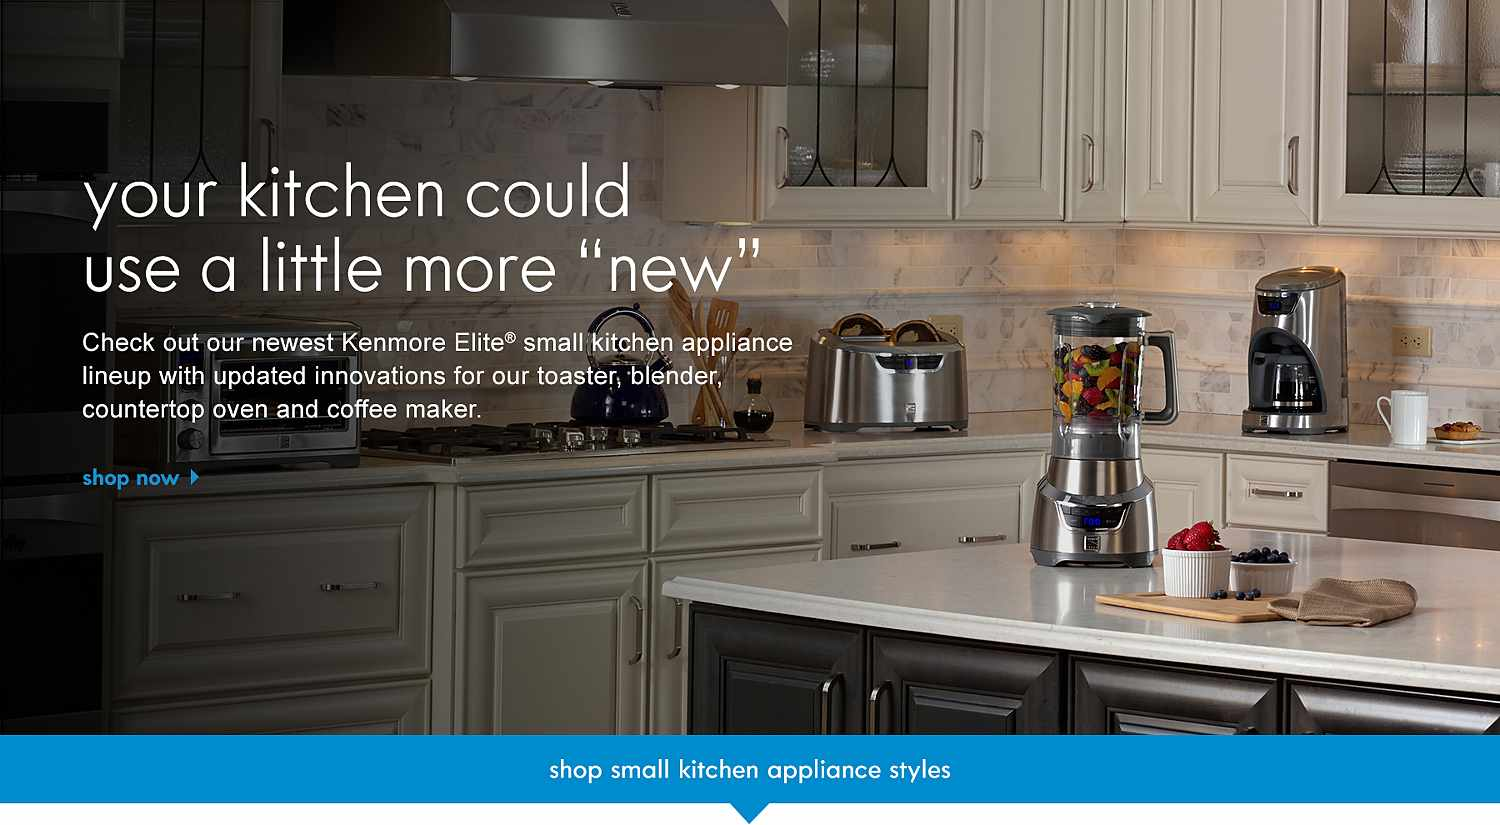 """your kitchen could use a little more """"new"""". Check out our newest Kenmore Elite® small kitchen appliance lineup with updated innovations for our toaster, blender, countertop oven and coffee maker."""